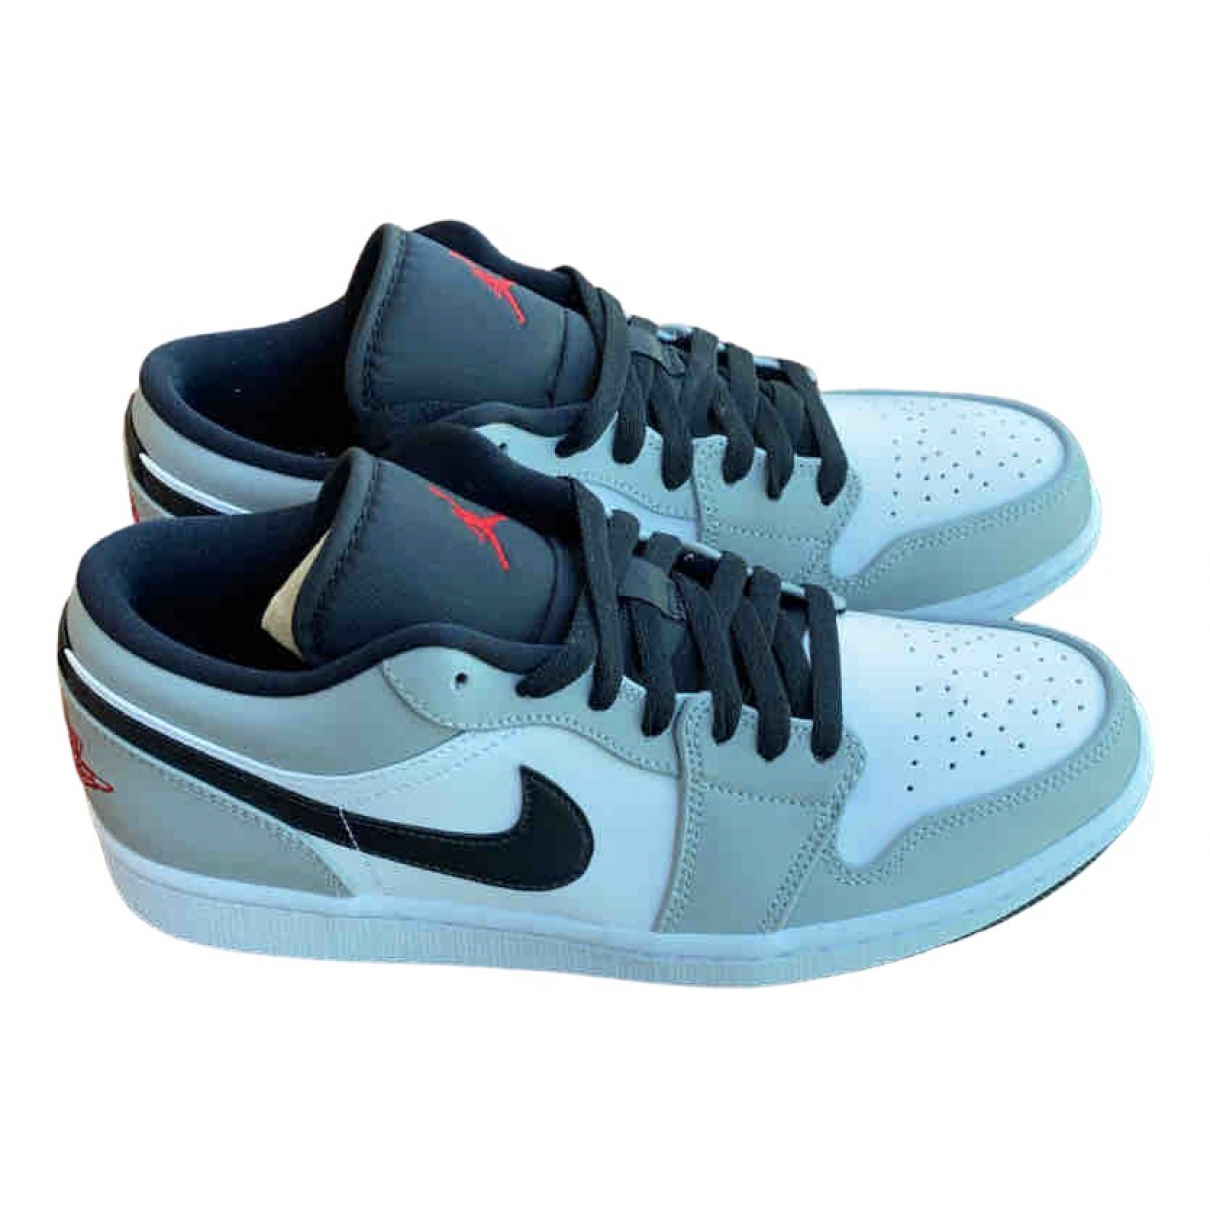 Jordan Air Jordan 1  Sneakers in  Grau Leder